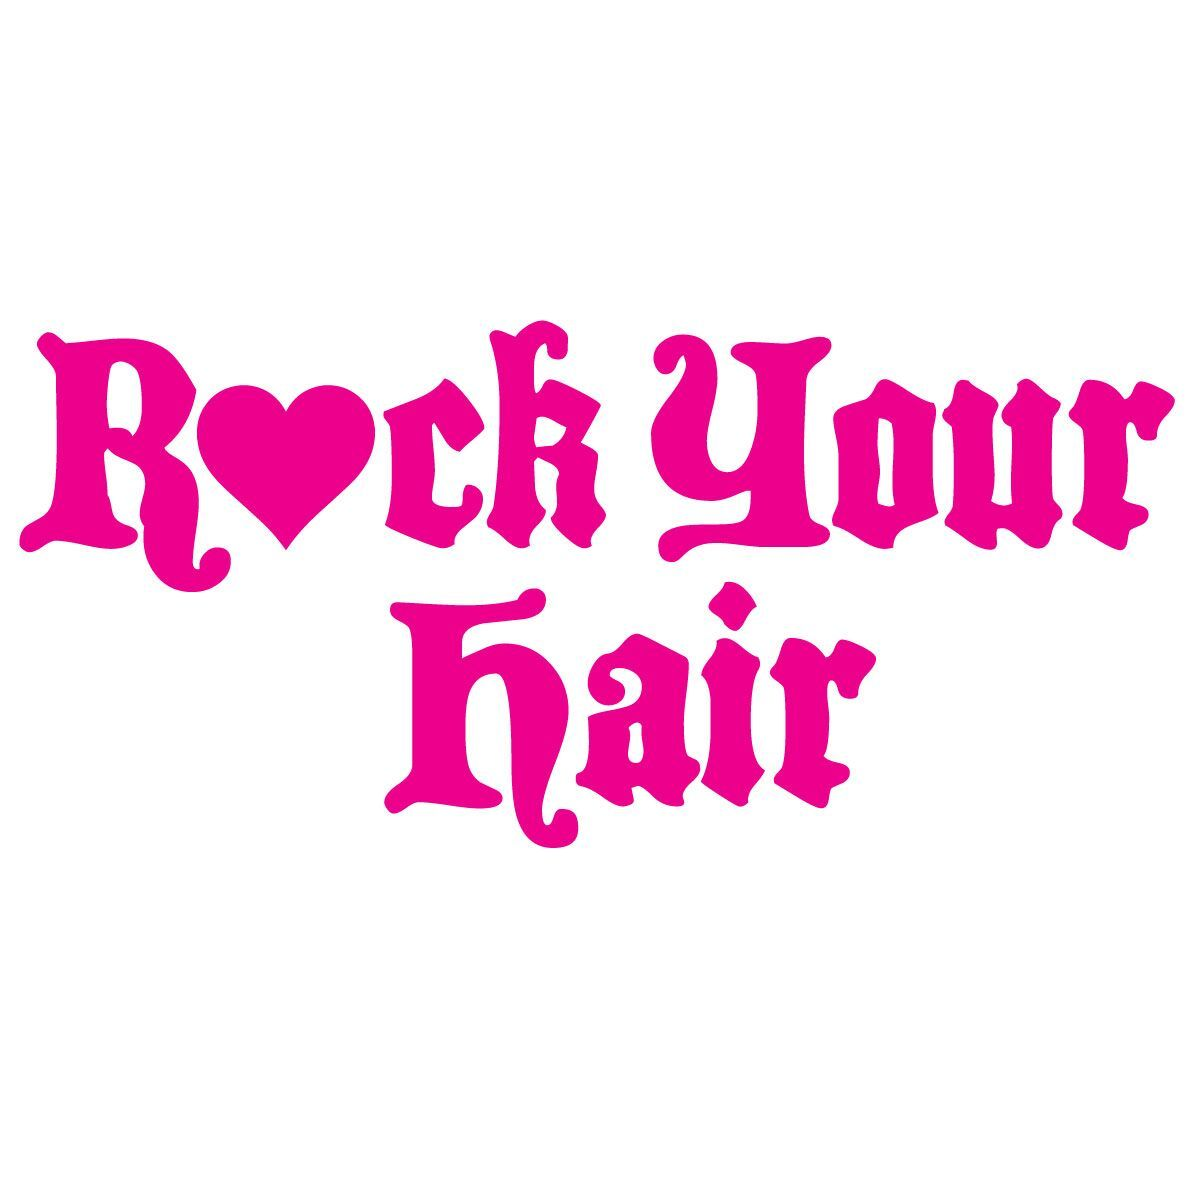 https://www.rockyourhair.com/?rfsn=2210762.642637